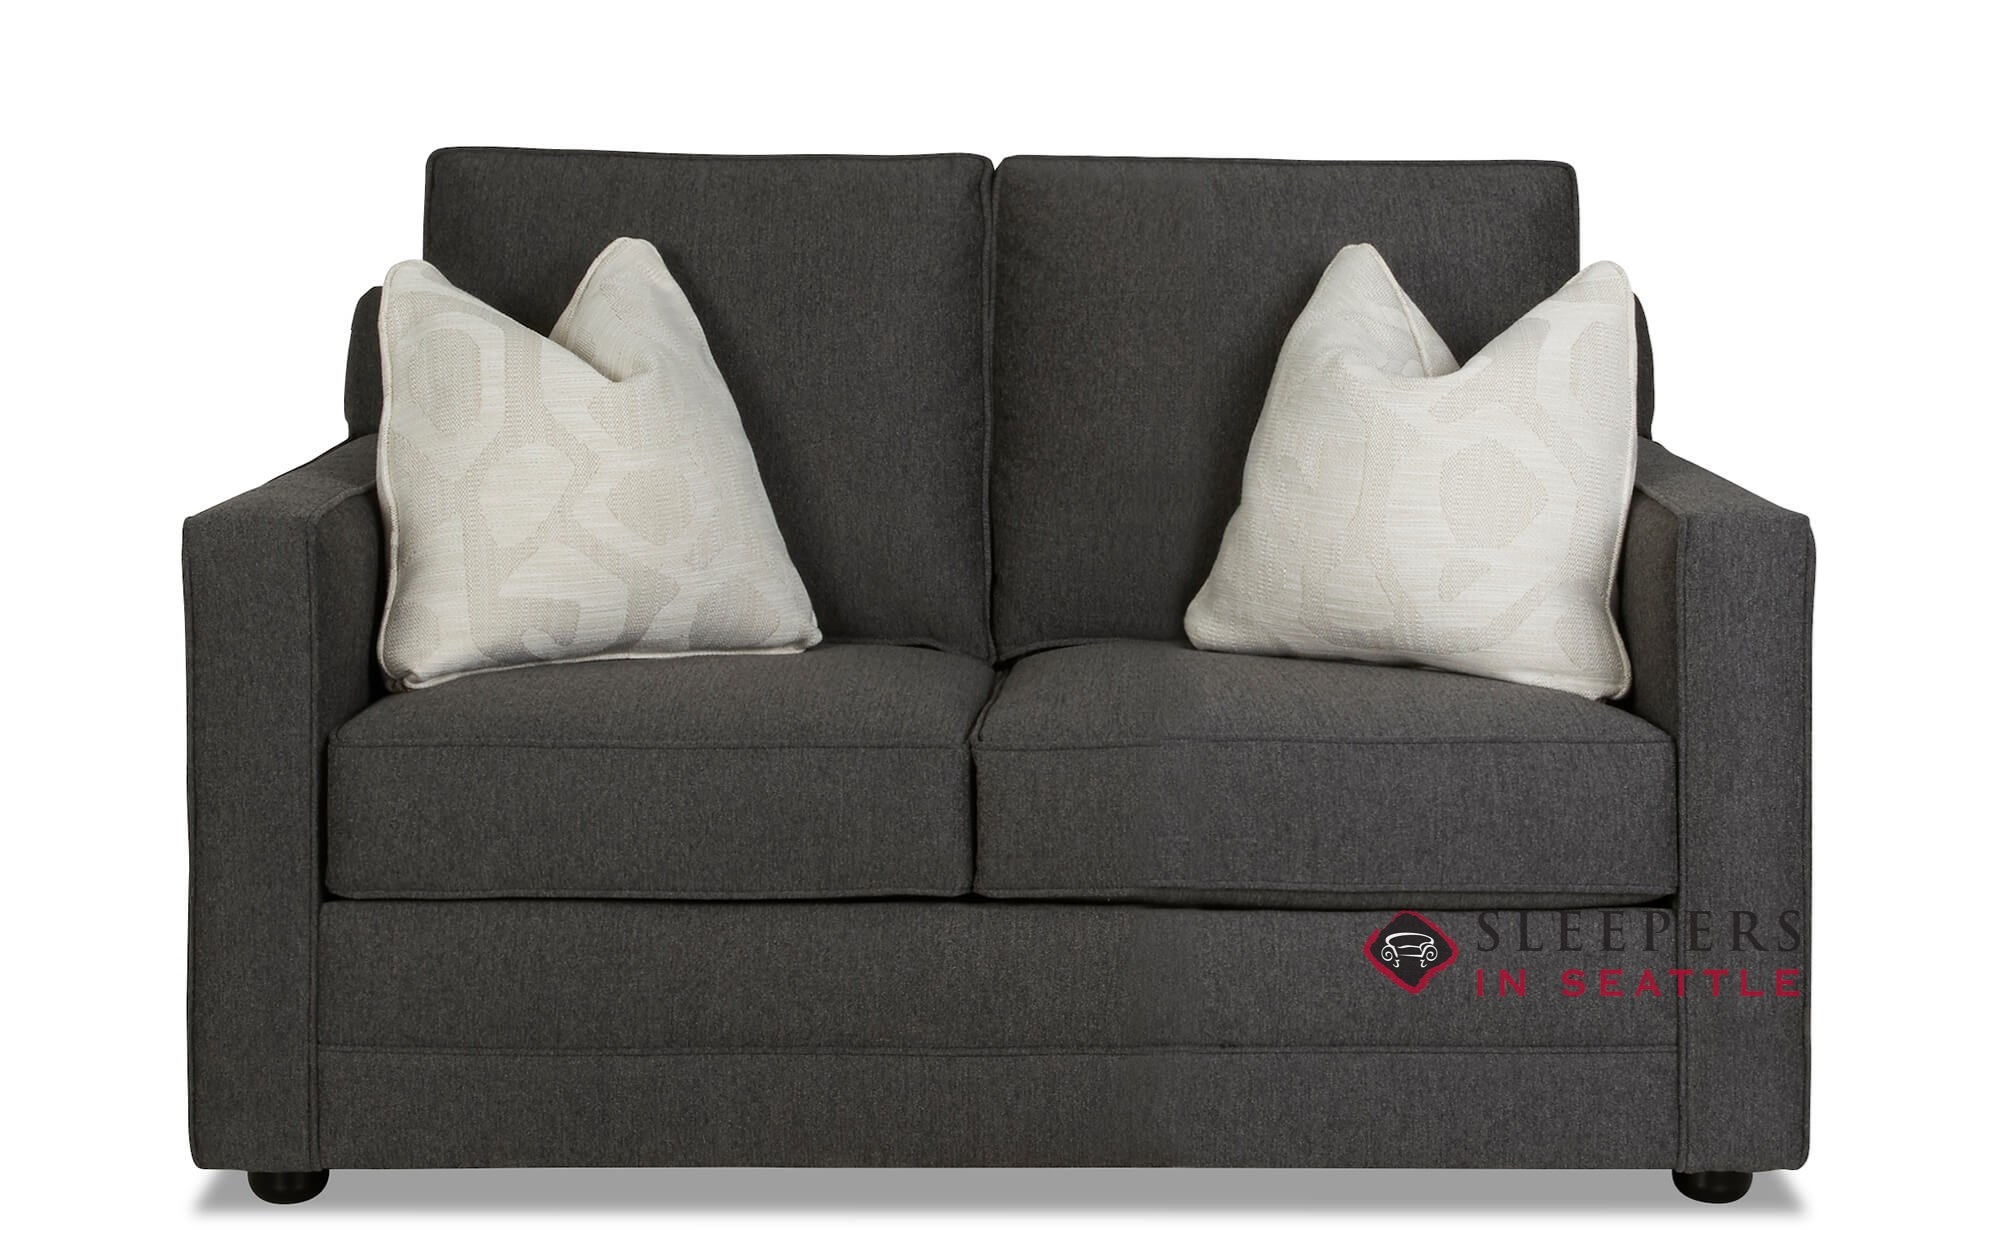 Customize And Personalize Luxembourg Twin Fabric Sofa By Savvy Twin Size Sofa Bed Sleepersinseattle Com